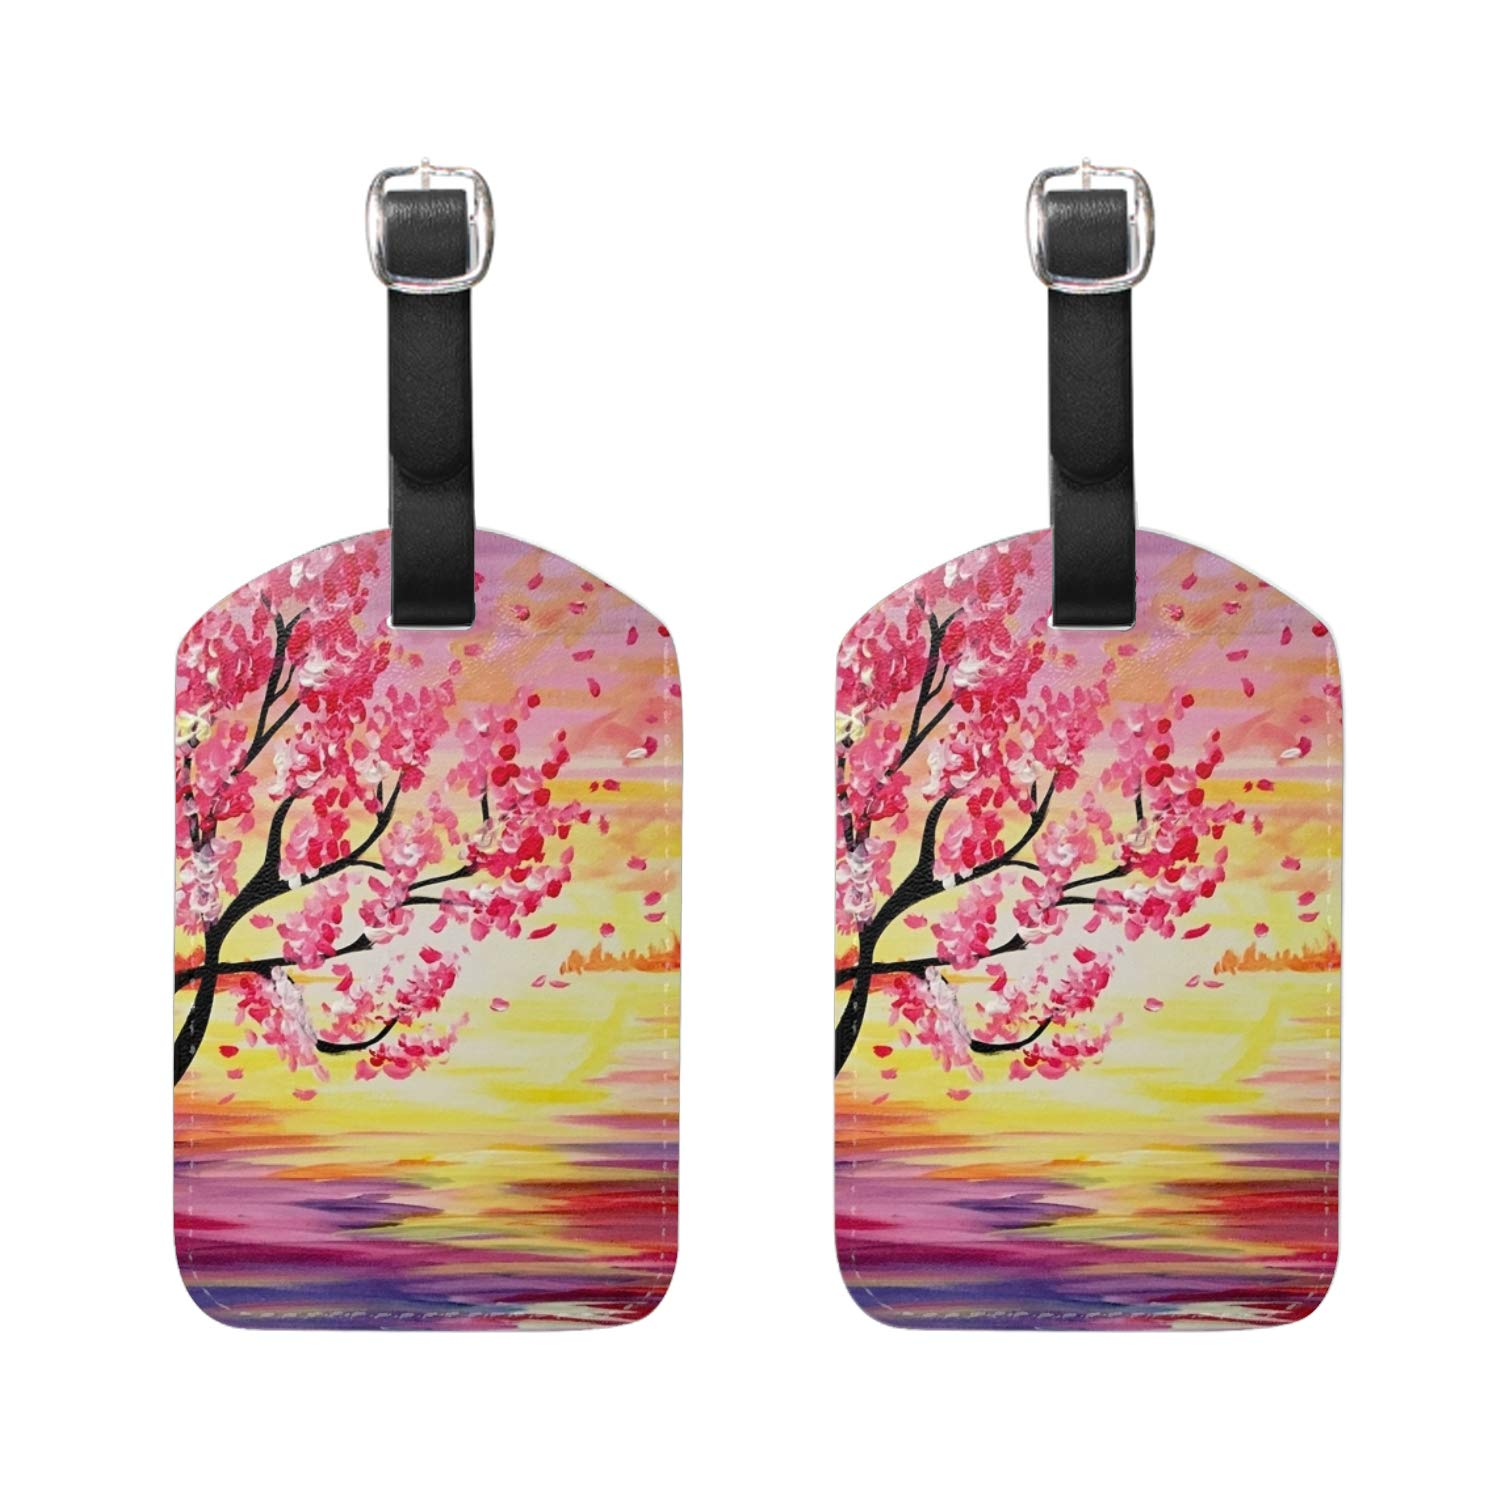 Carnation Flowers Luggage Tag Perfect to Quickly Spot Luggage Suitcase